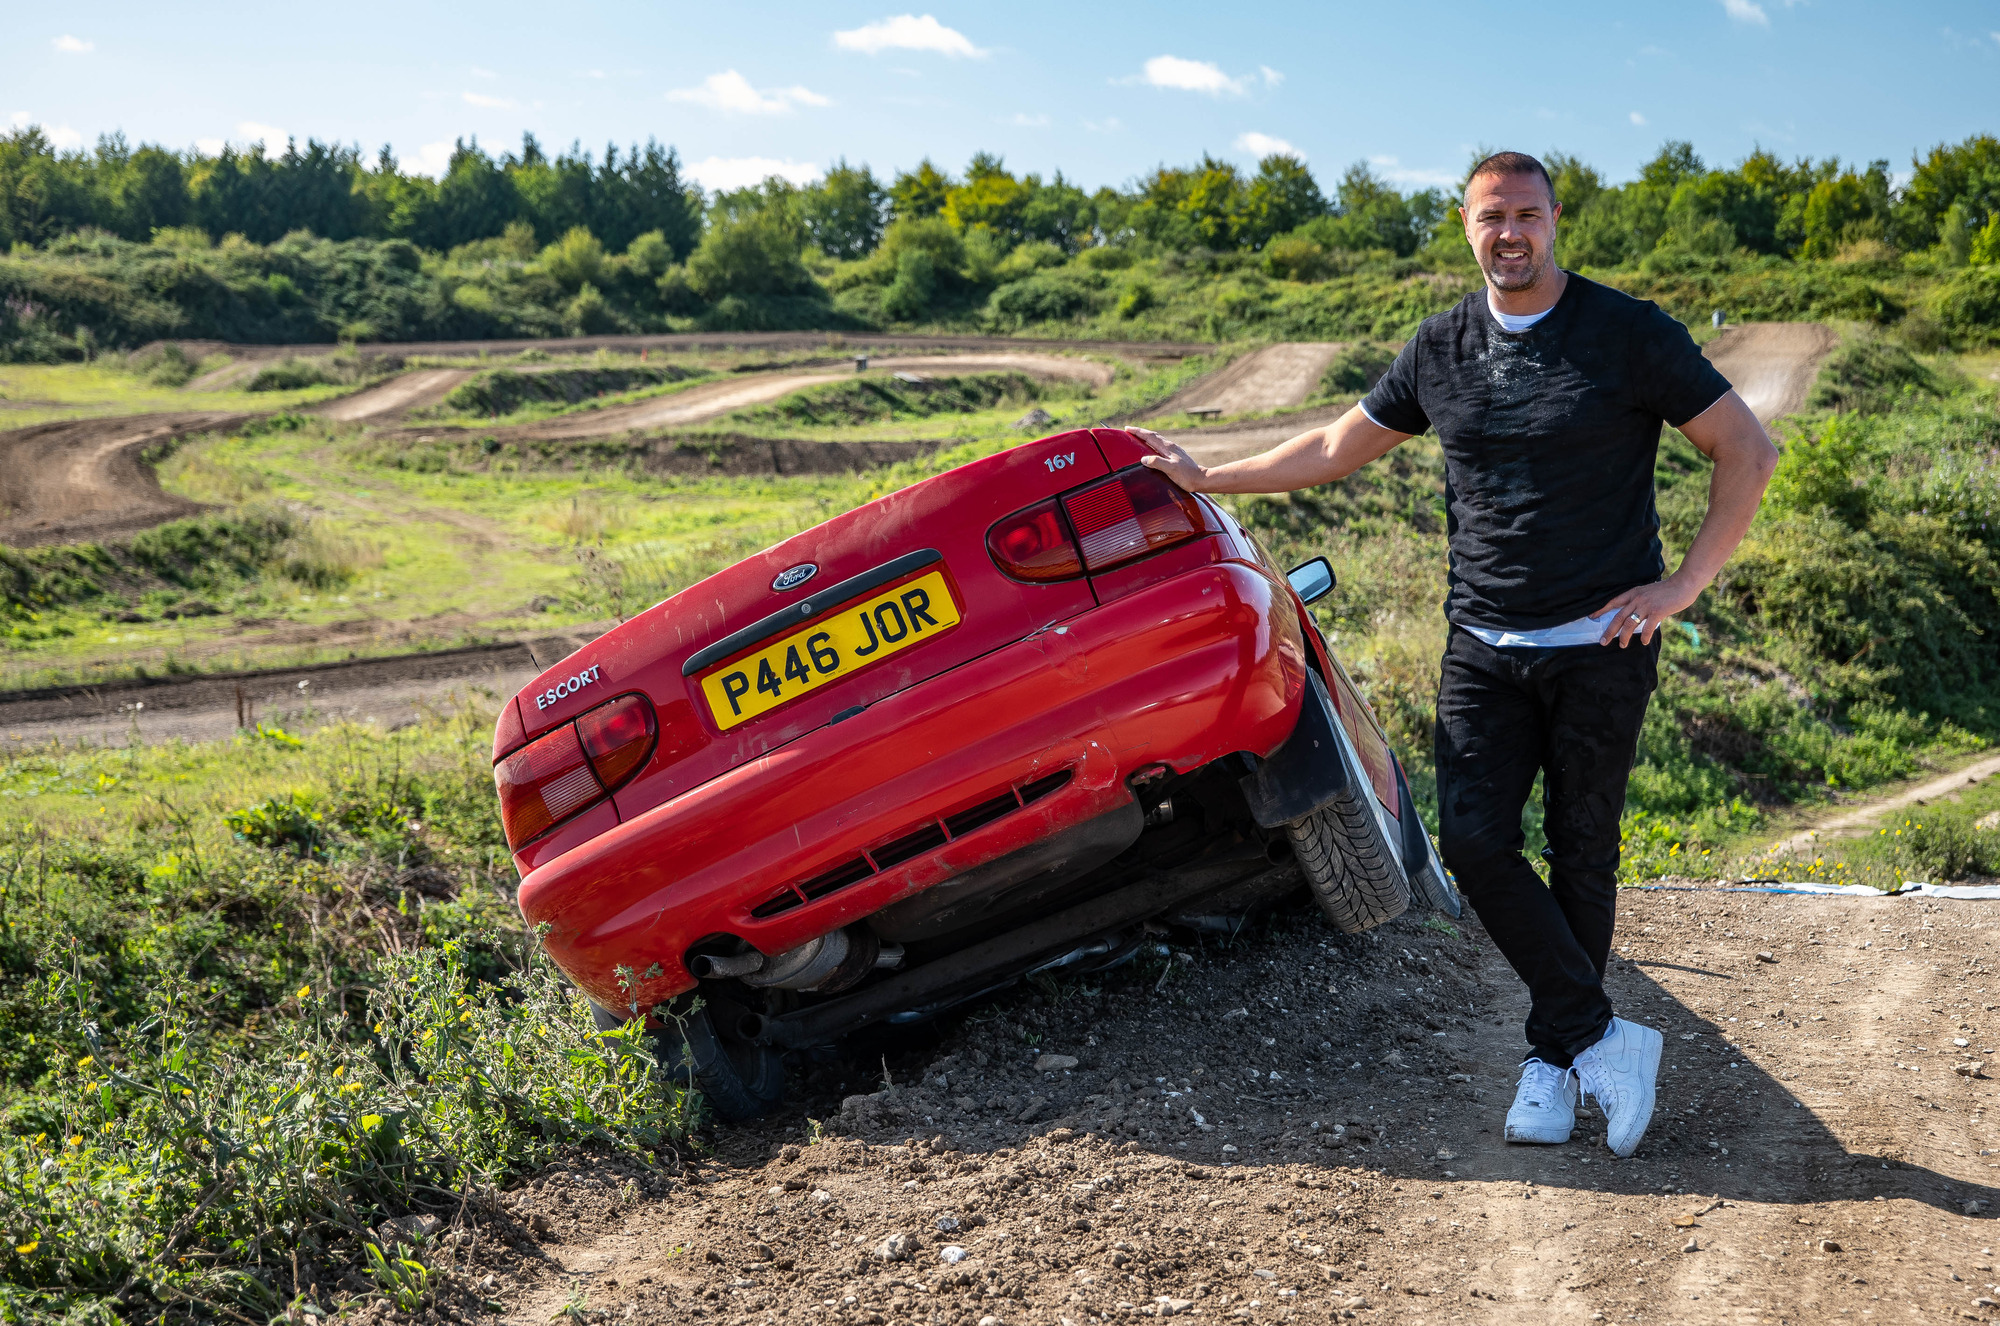 Top Gear star Paddy McGuinness denies the show is set up for the cameras